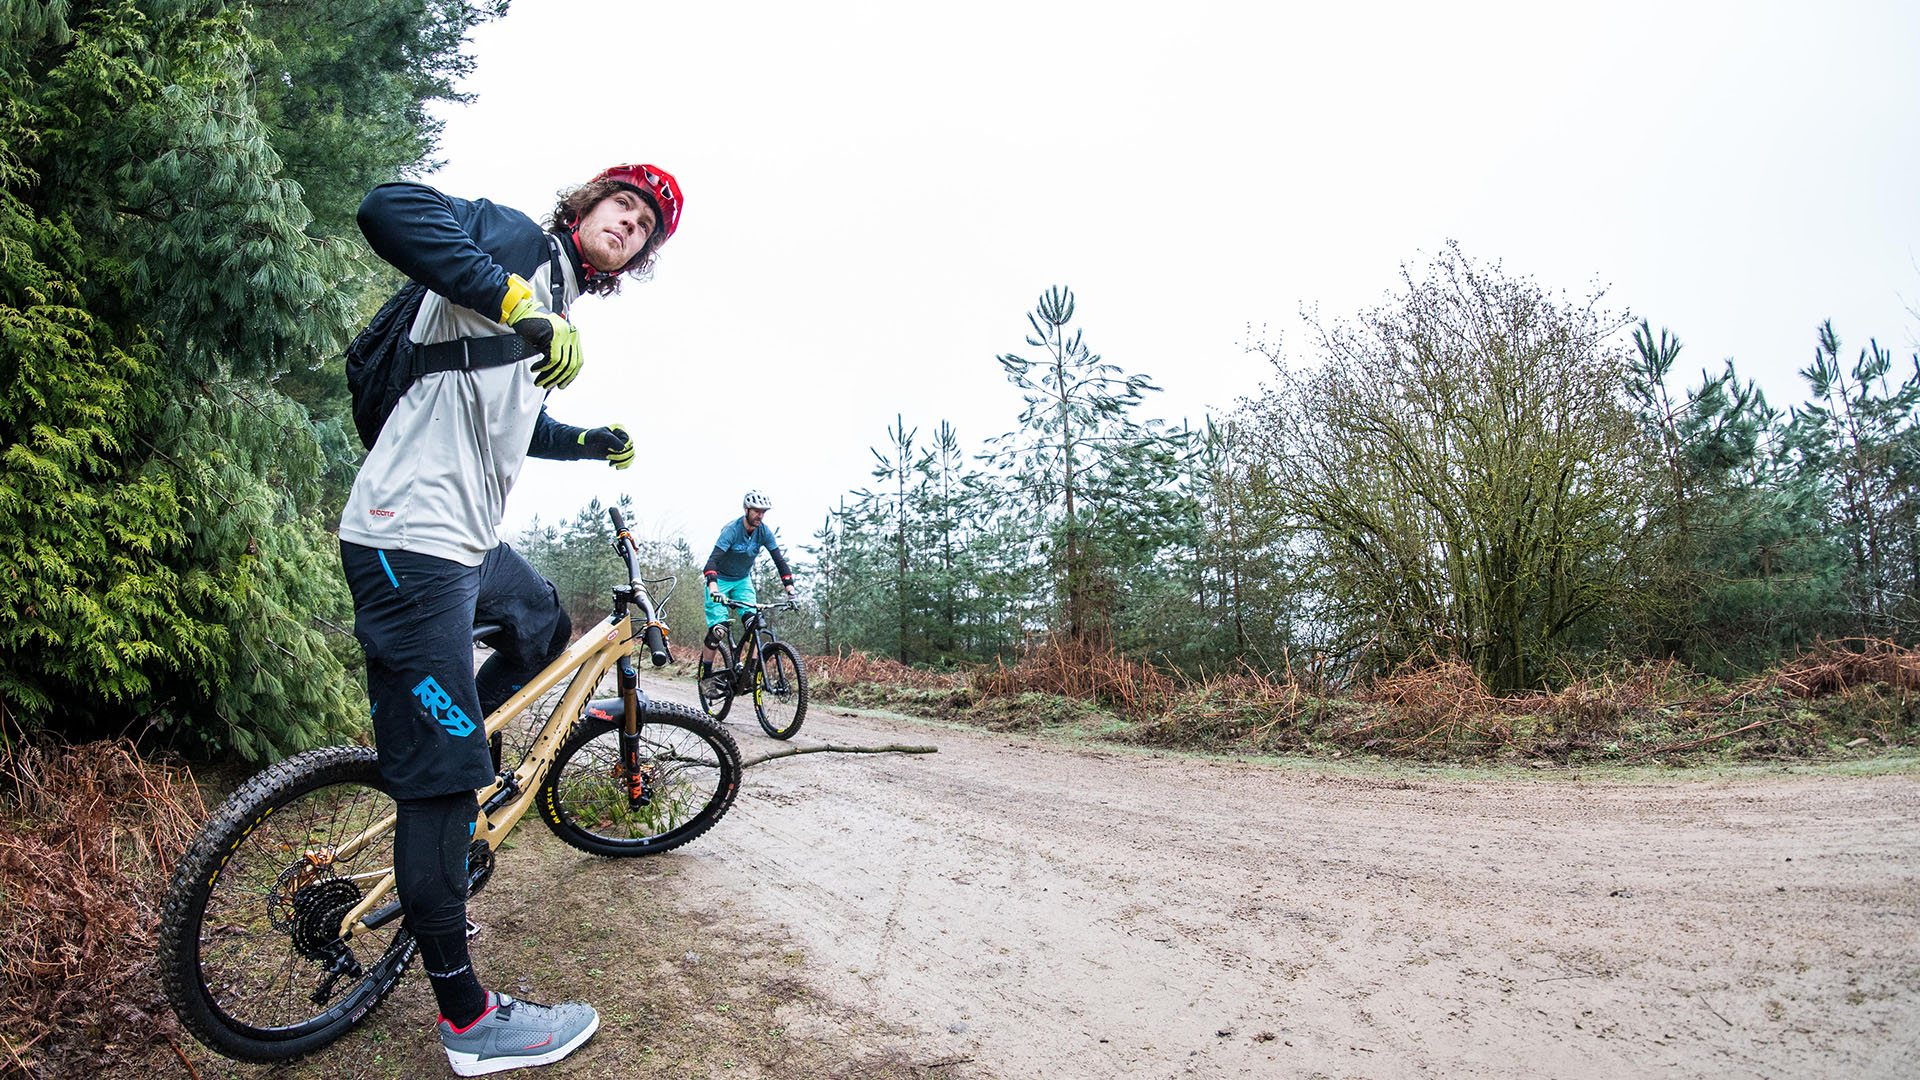 +3 MTB Coach Jay Williamson goes through Bunny Hop technique during a coaching event in the Forest of Dean